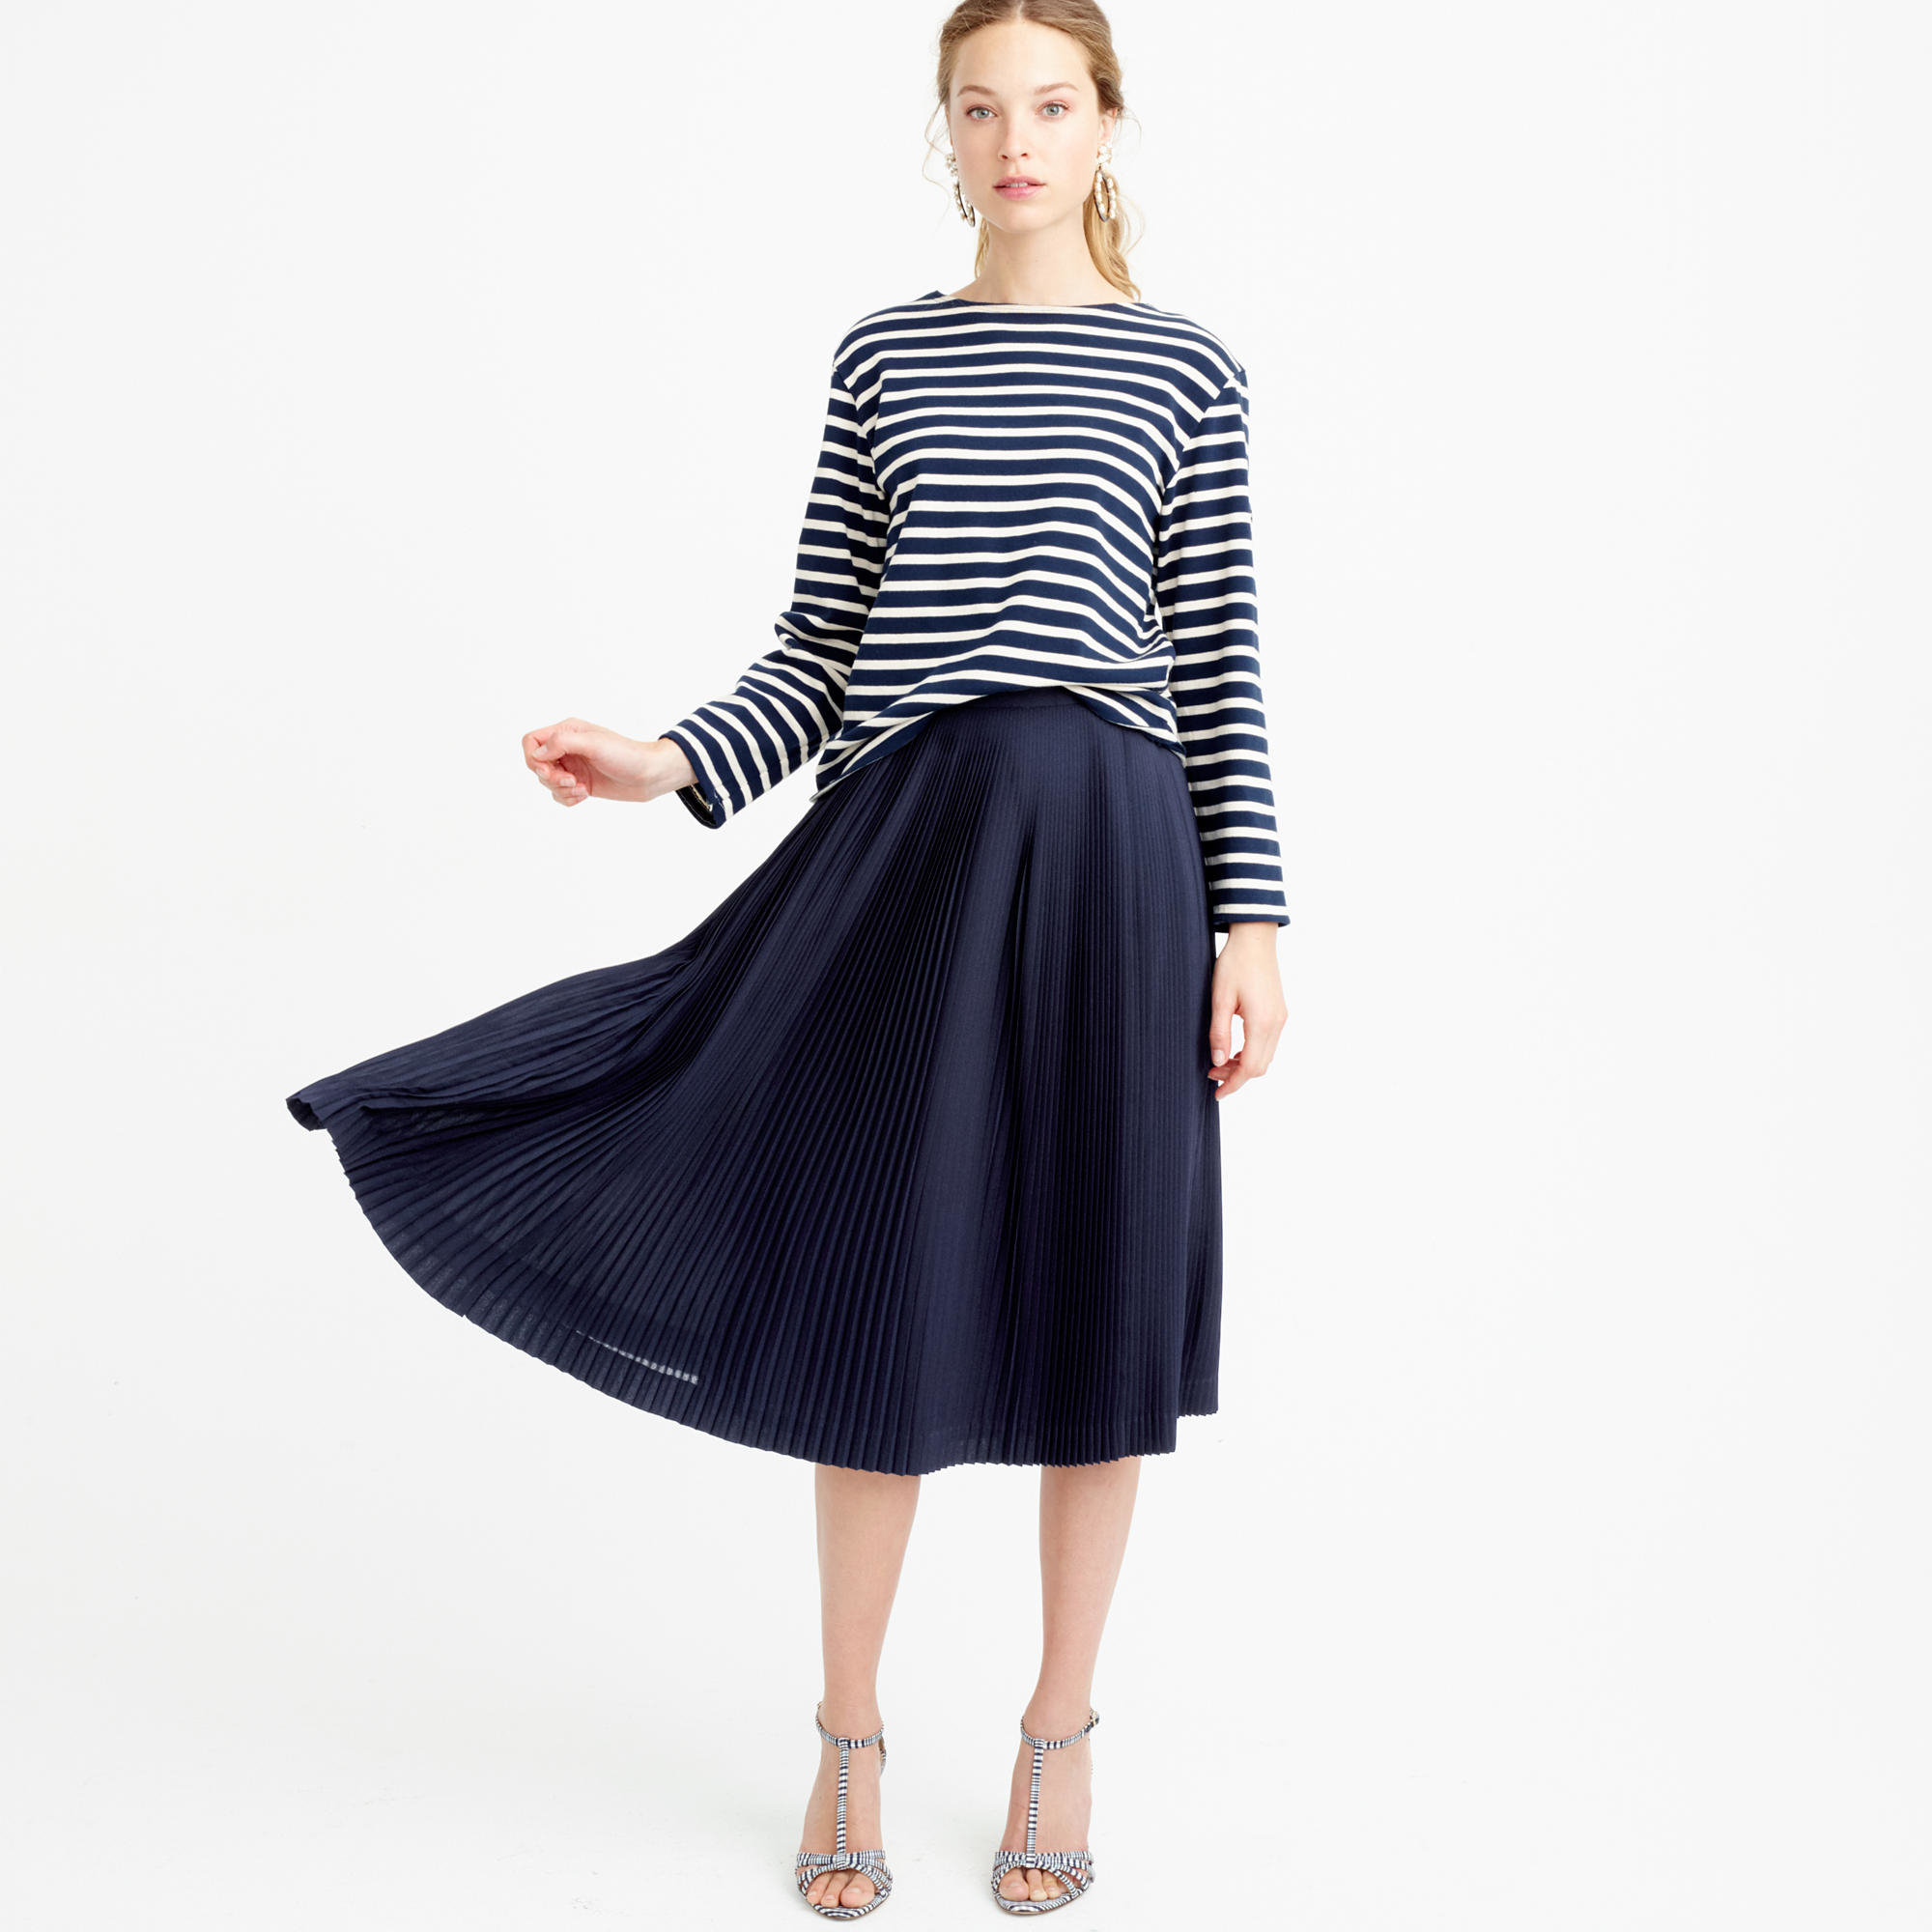 J.crew Petite Micro-pleated Midi Skirt in Blue | Lyst